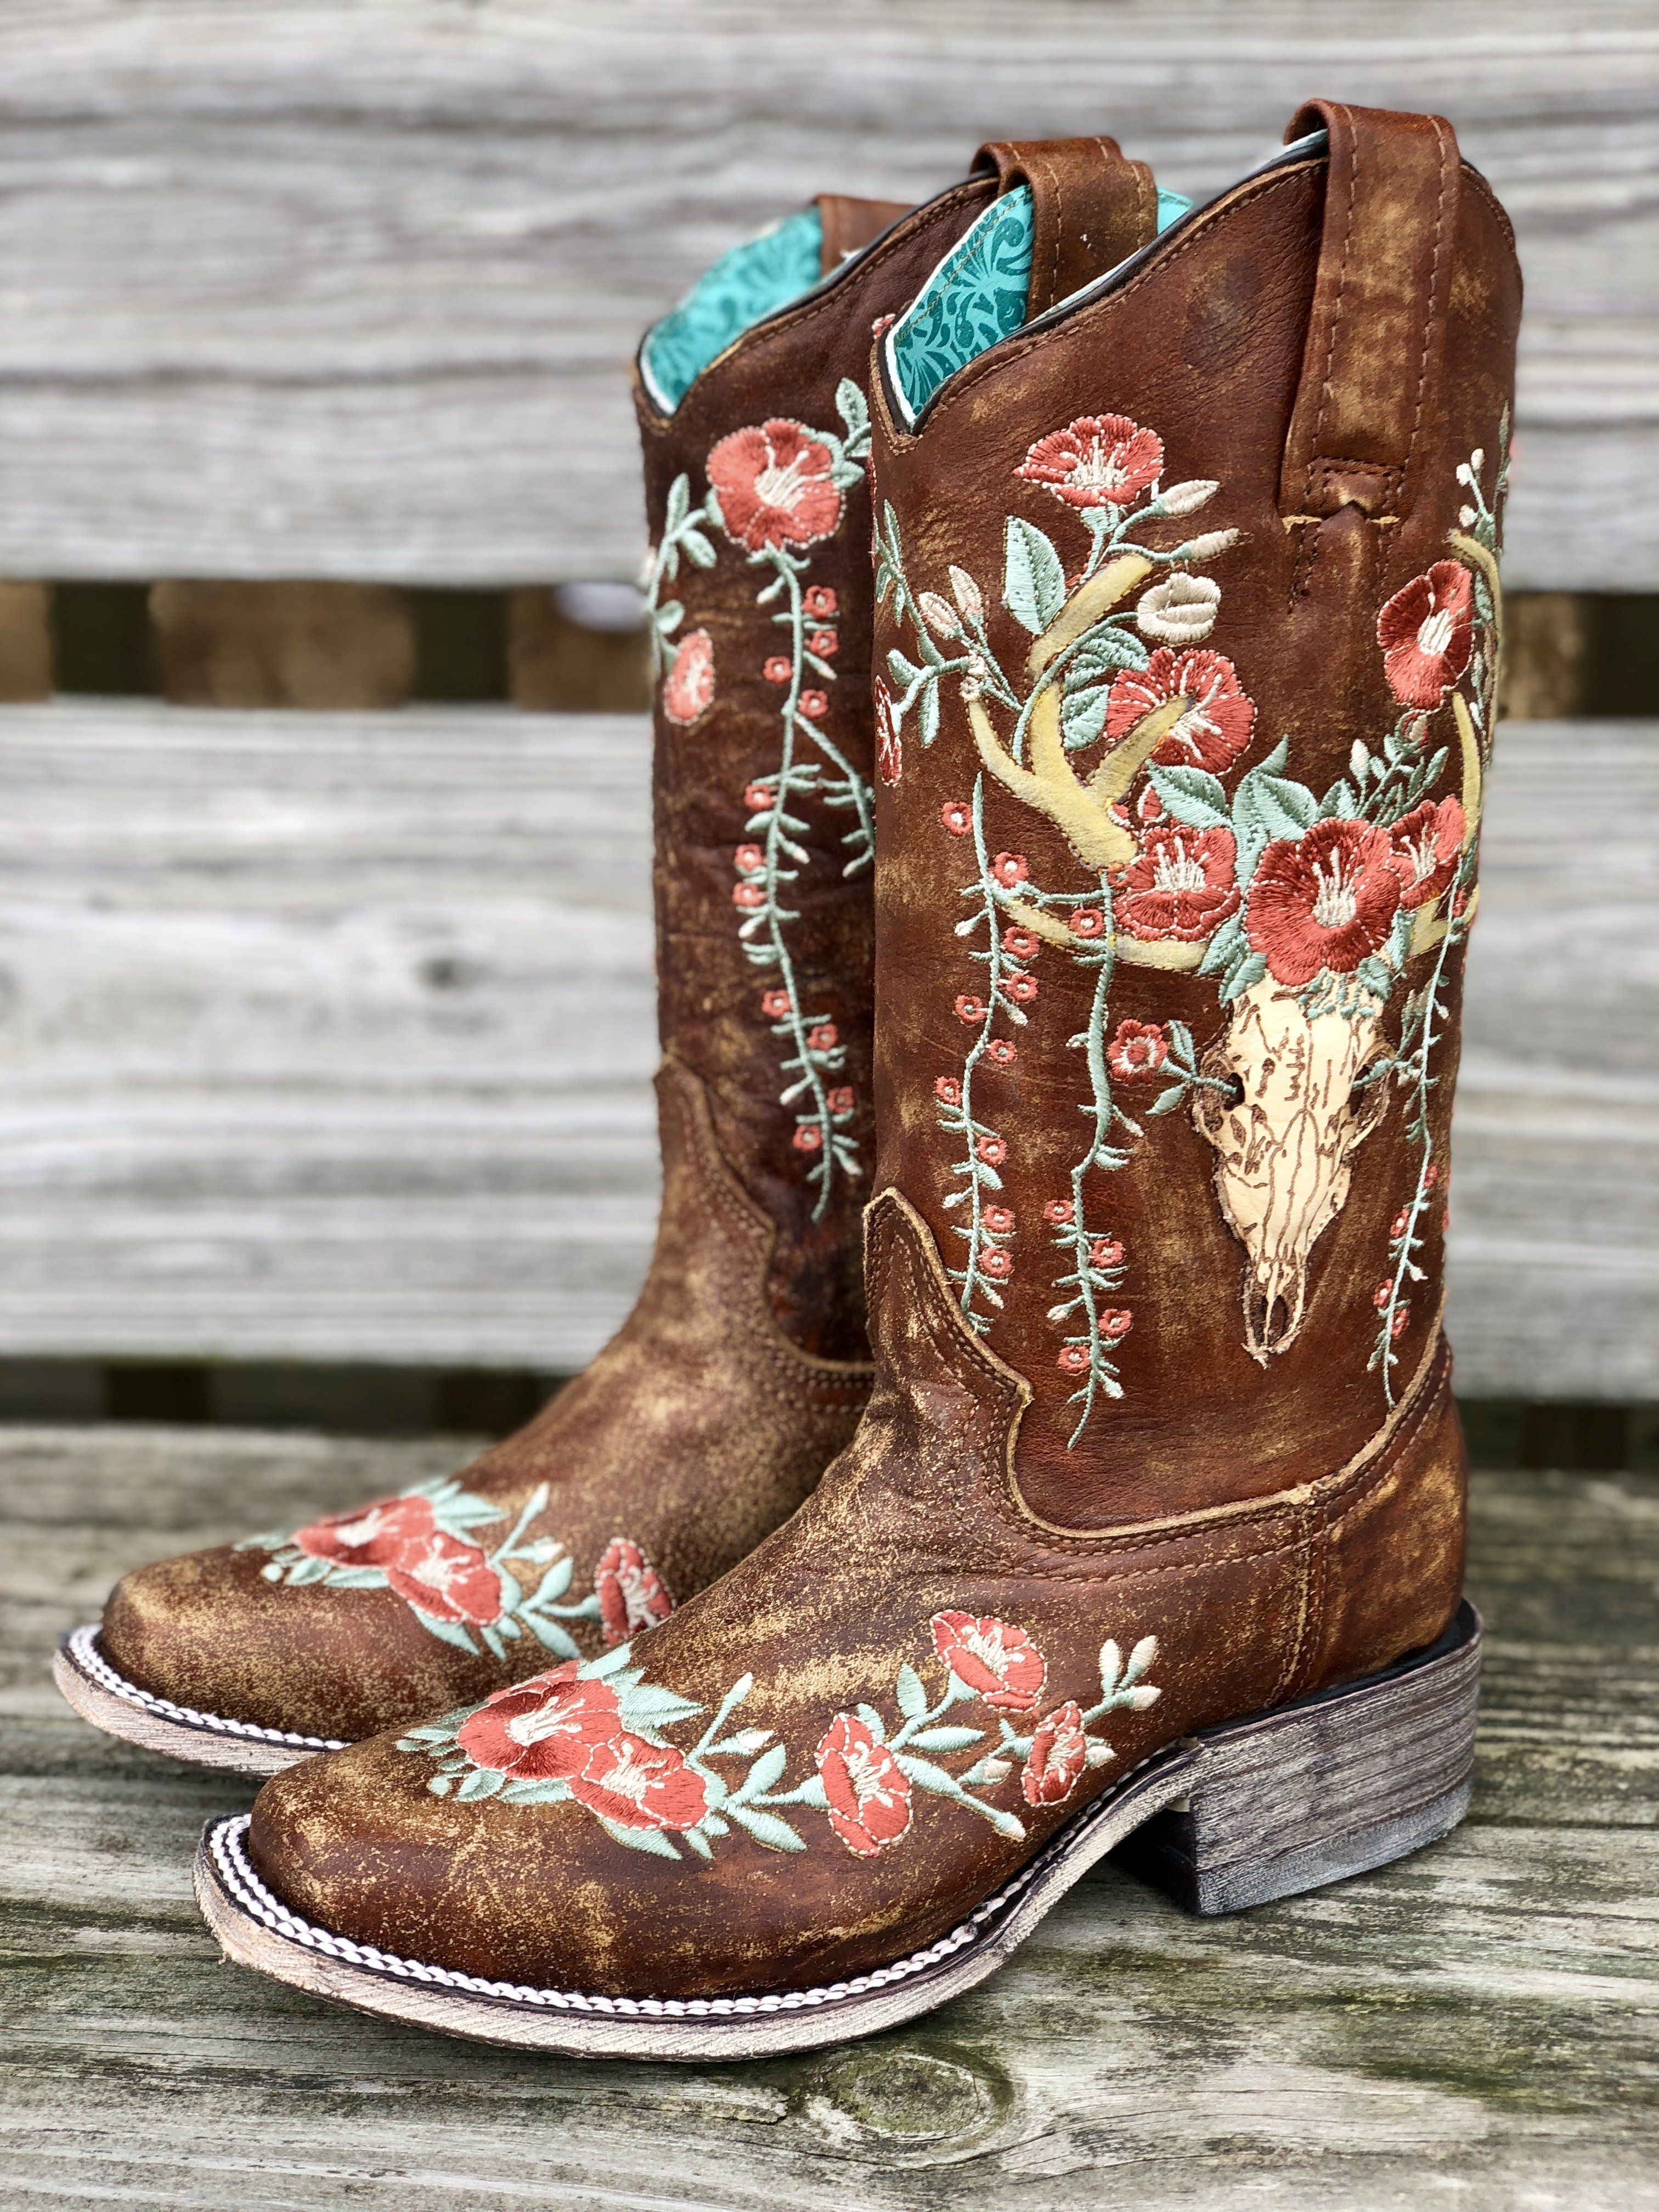 bf1bf079 Corral Women's Deer Skull & Embroidery Distressed Tan Square Toe Boots A3708